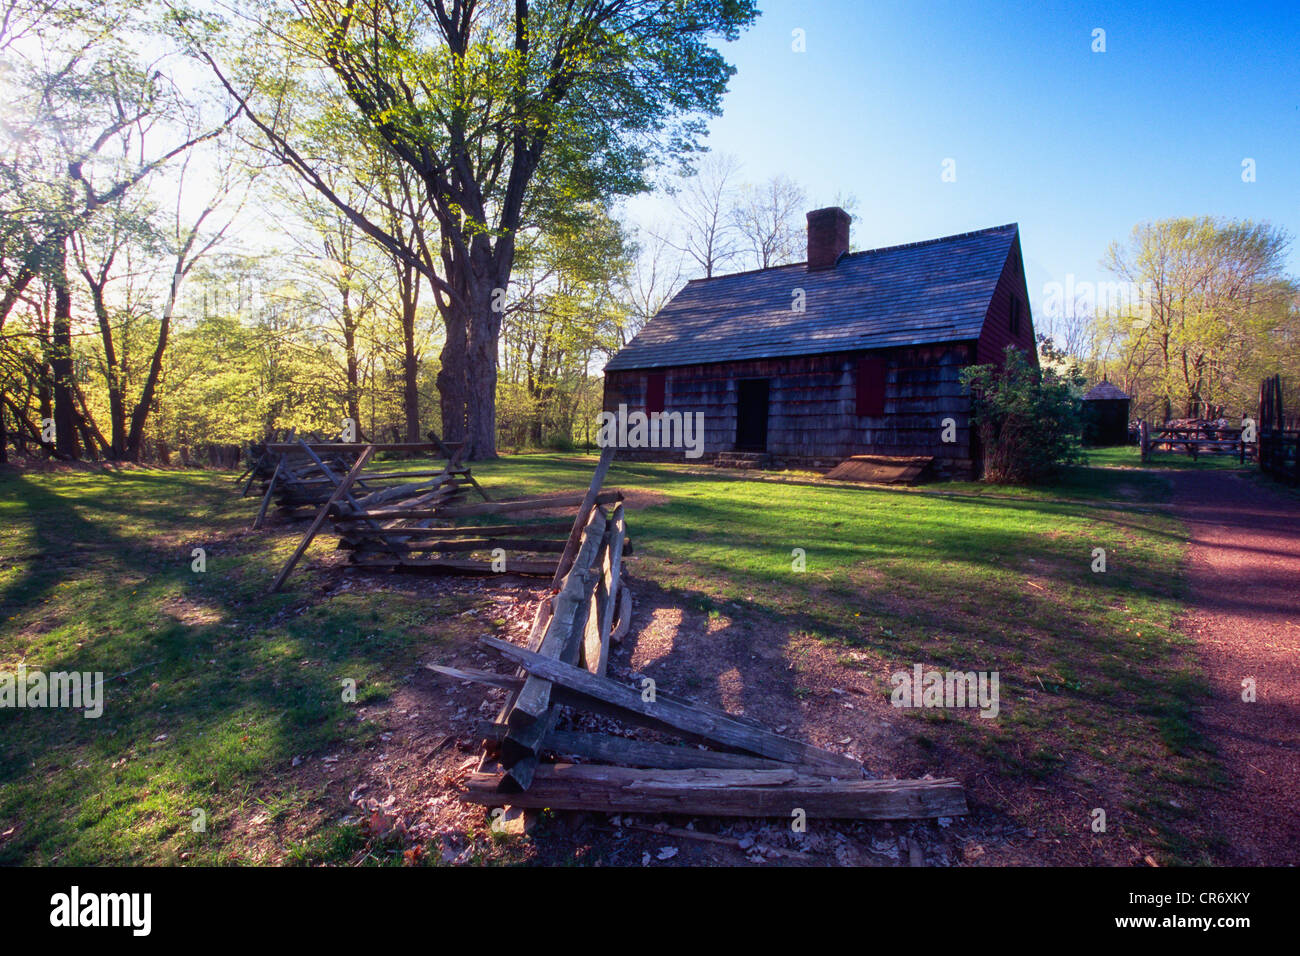 Spring Morning at the Historic Wick Farmhouse, Jockey Hollow State Park, Morristown, New Jersey - Stock Image